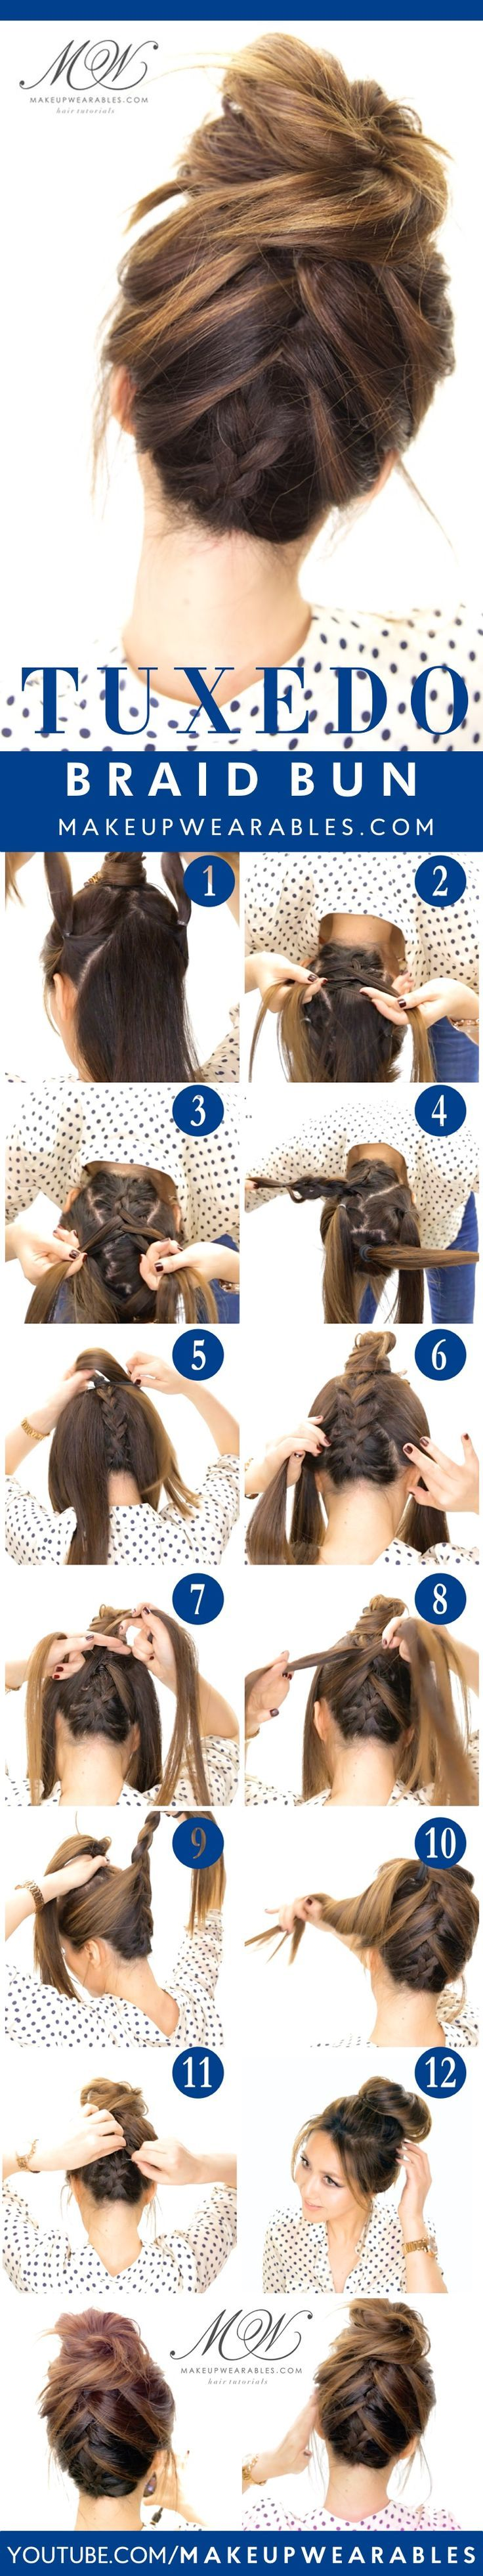 Tuxedo Braid Bun Tutorial | 5 Messy Updos for Long Hair, check it out at makeupt...